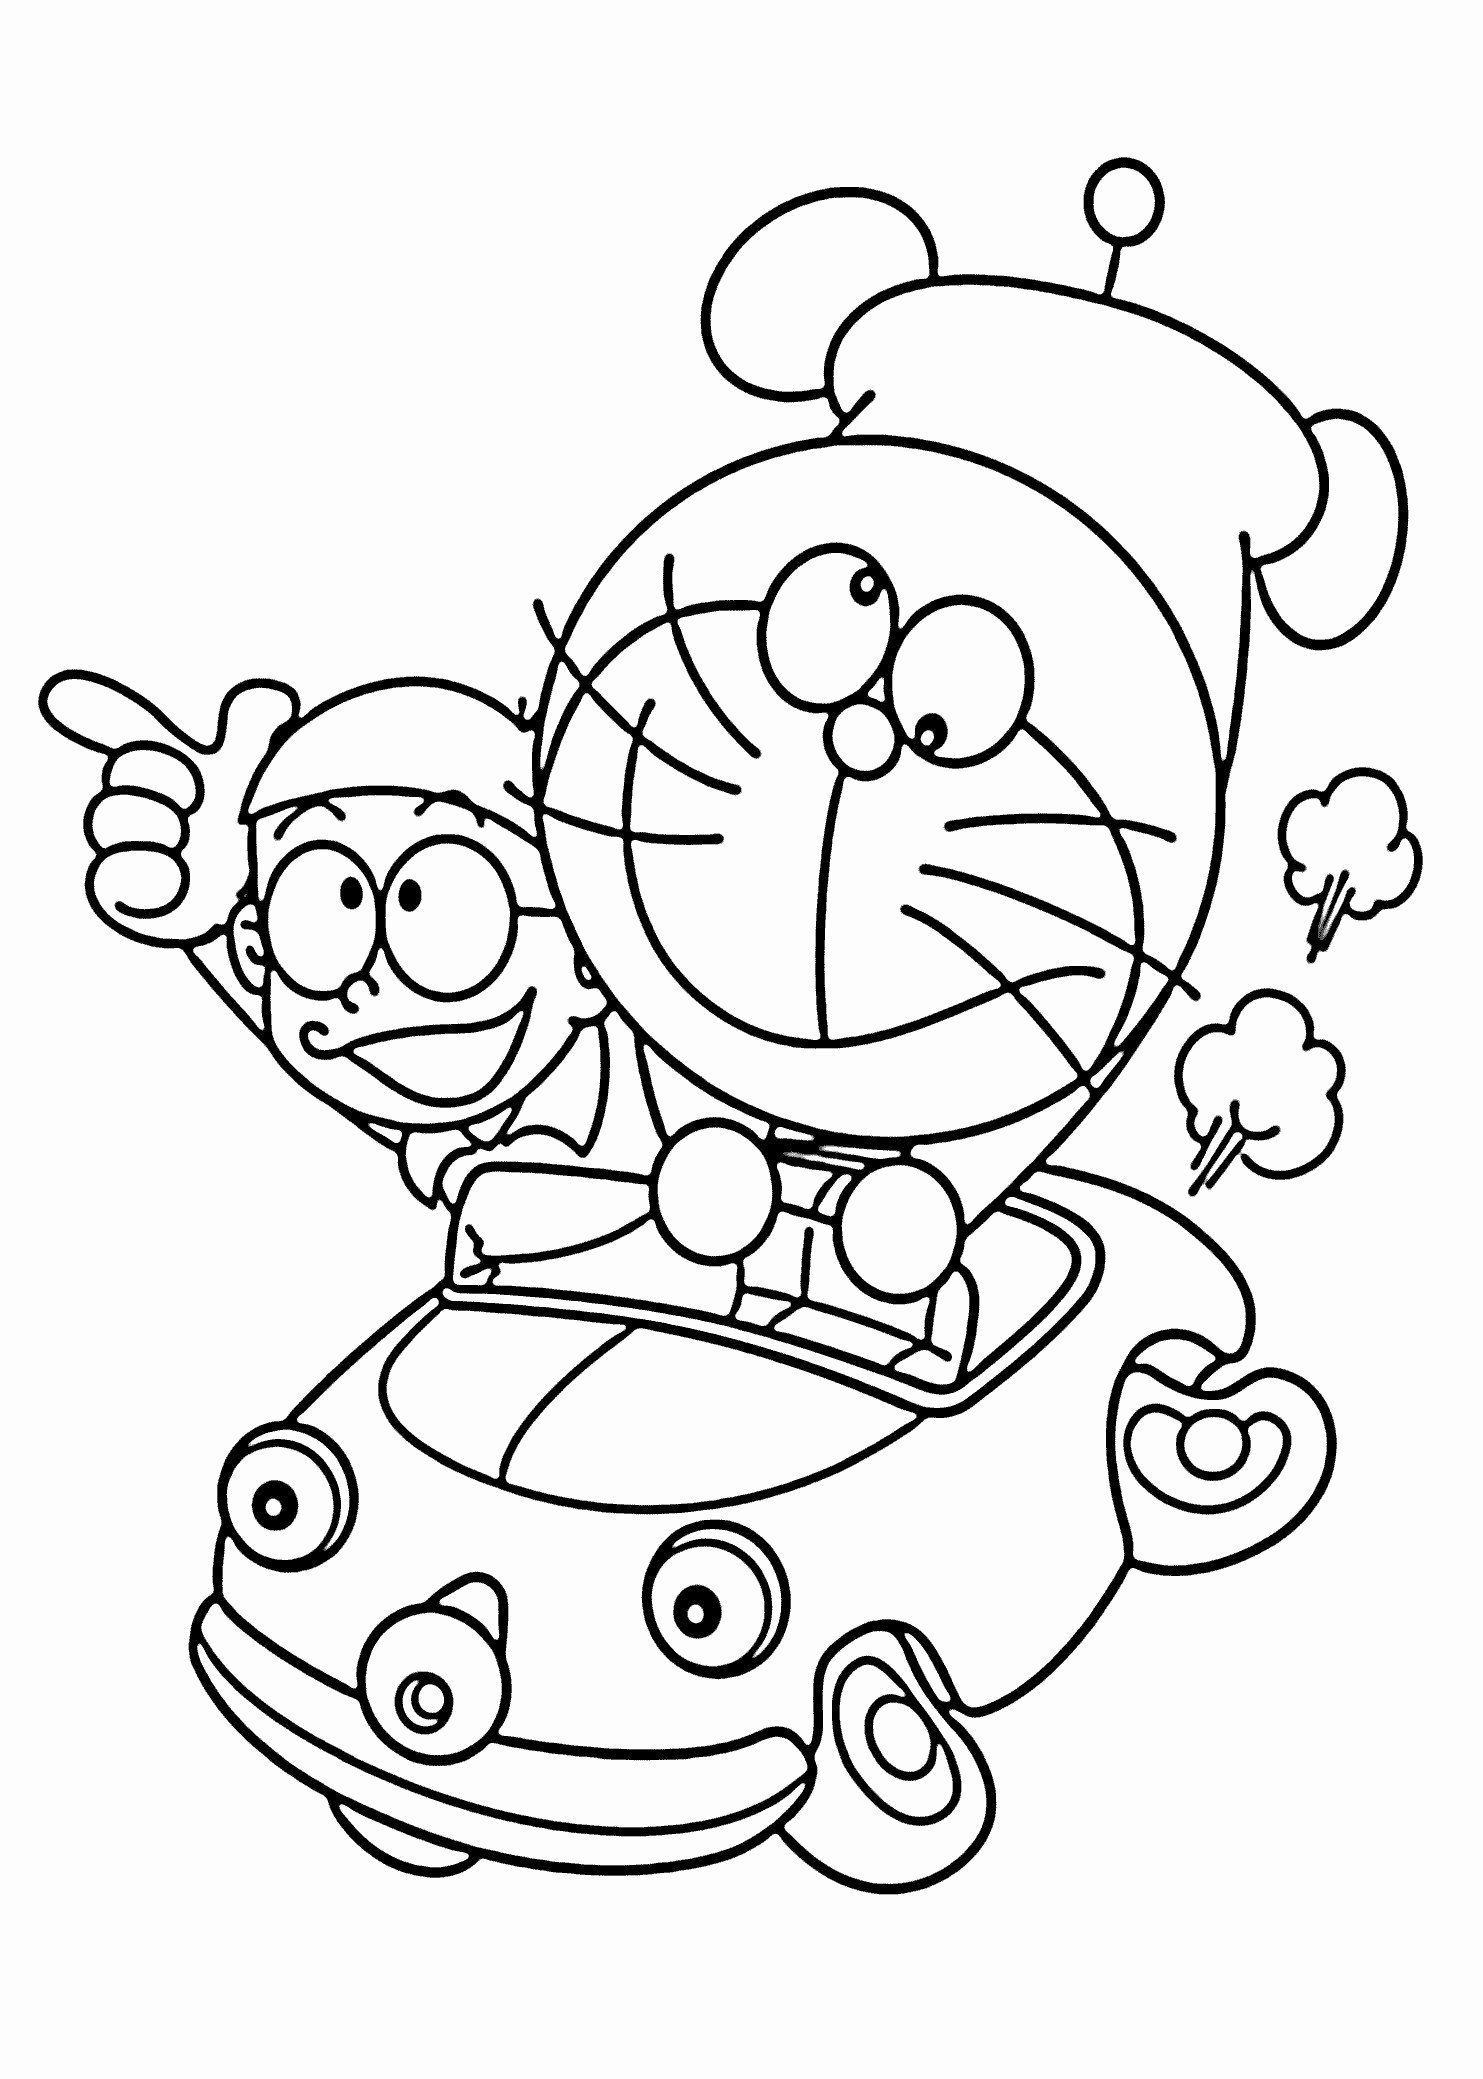 Christmas Shopkins Coloring Pages Elegant Face Expressions